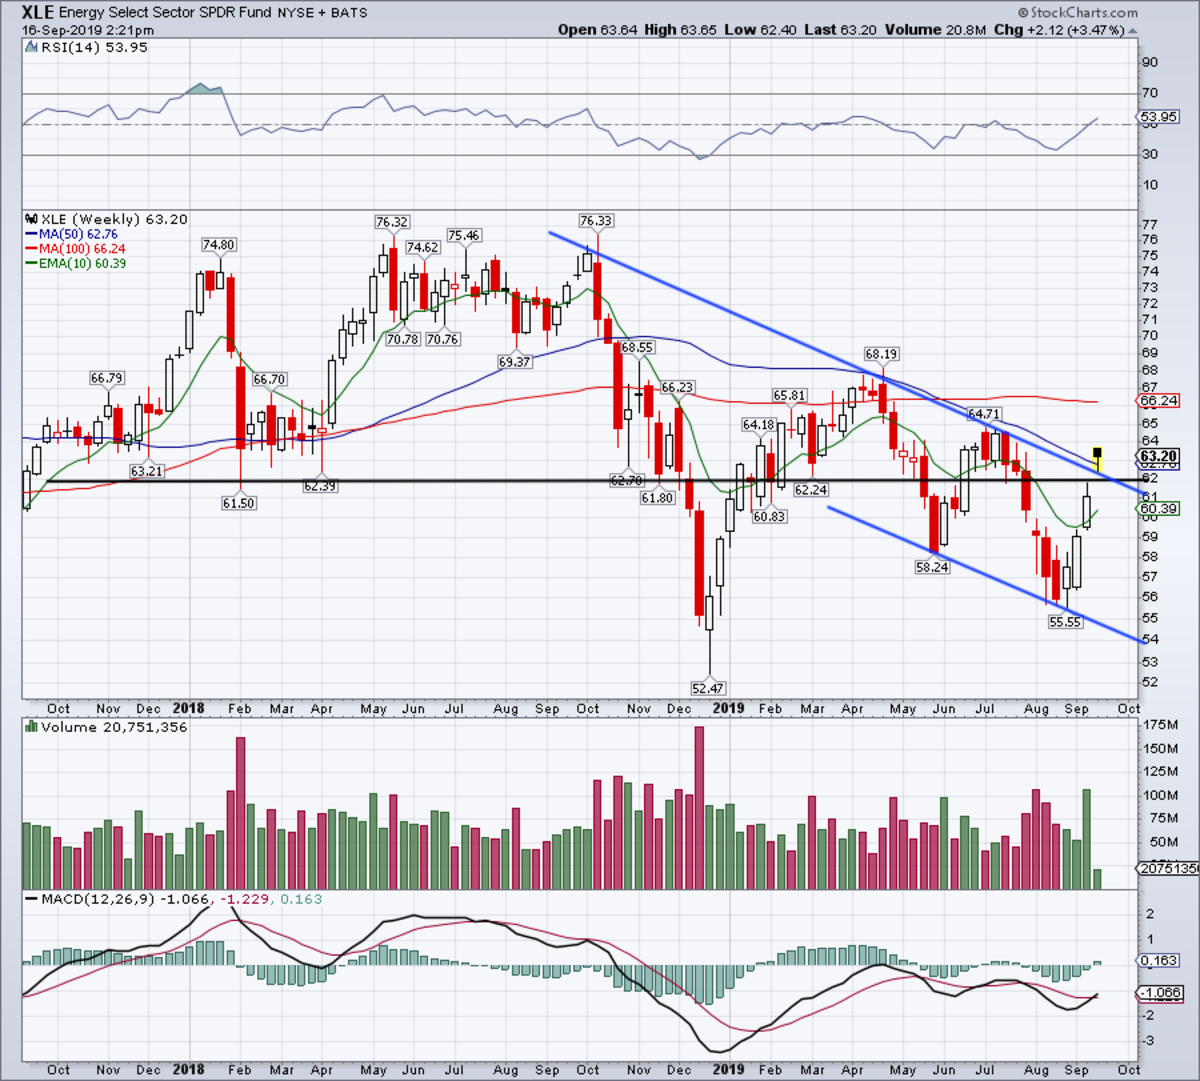 Weekly chart of the XLE stock.